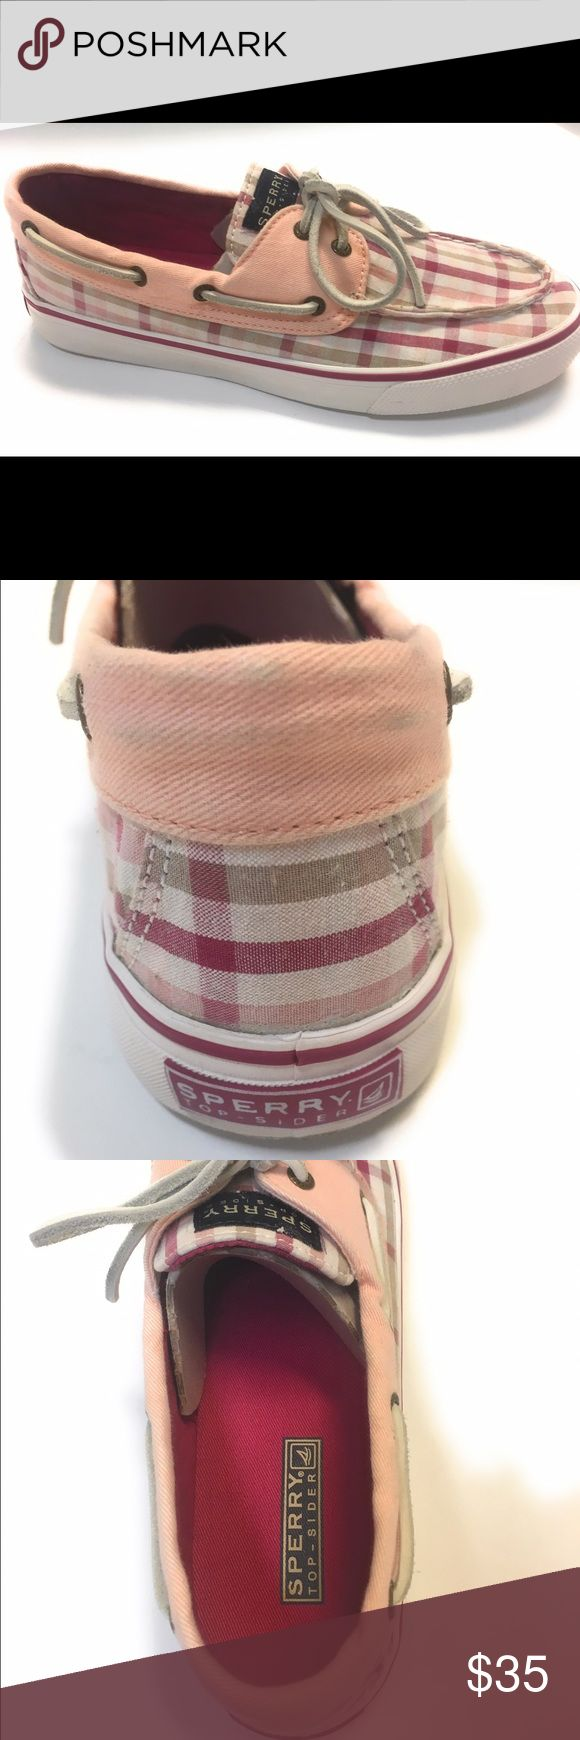 Women's 8.5 Sperry Top Sider Pink Khaki Plaid Euc Women's 8.5 Sperry Top Sider Pink Khaki Plaid Awesome Condition  I am listing as used only on the fact that there are a couple marks on the bottom. No damage. Marks are very very minor . My seller standards are very high. Making these not store new. But these shoes appear to be in like new. Condition. Not wear marks anywhere. Sperry Shoes Flats & Loafers